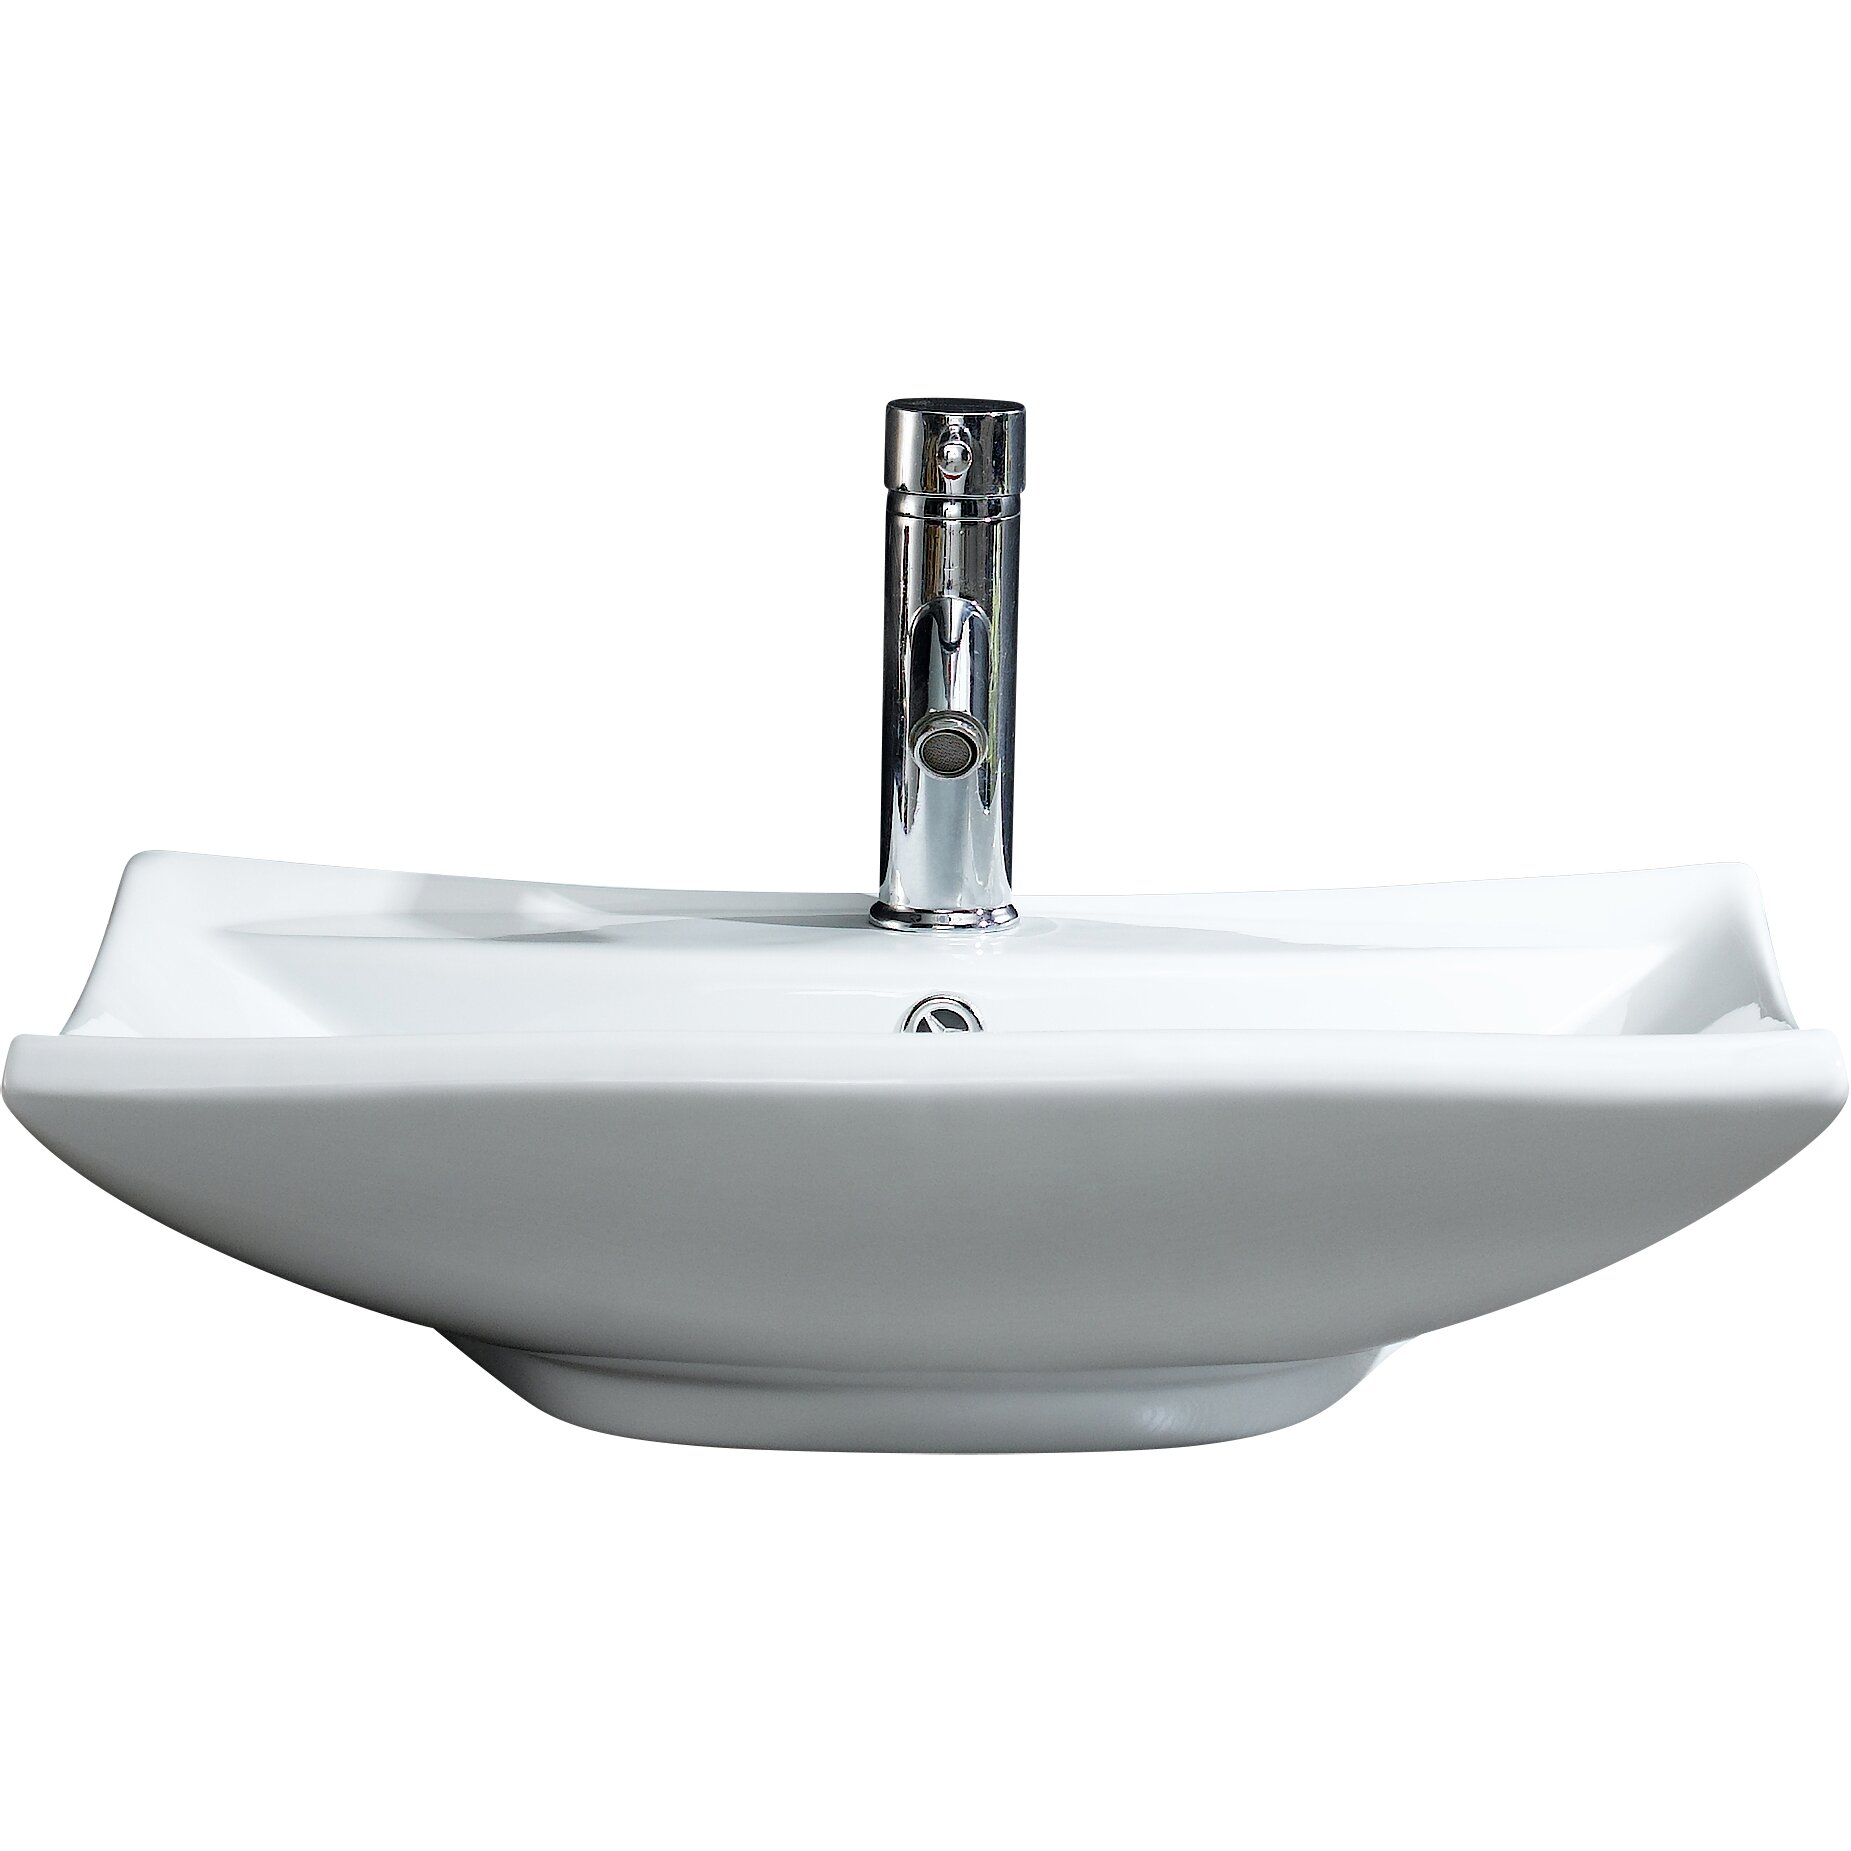 fine fixtures modern vitreous square vessel sink vessel bathroom sink with overflow reviews. Black Bedroom Furniture Sets. Home Design Ideas